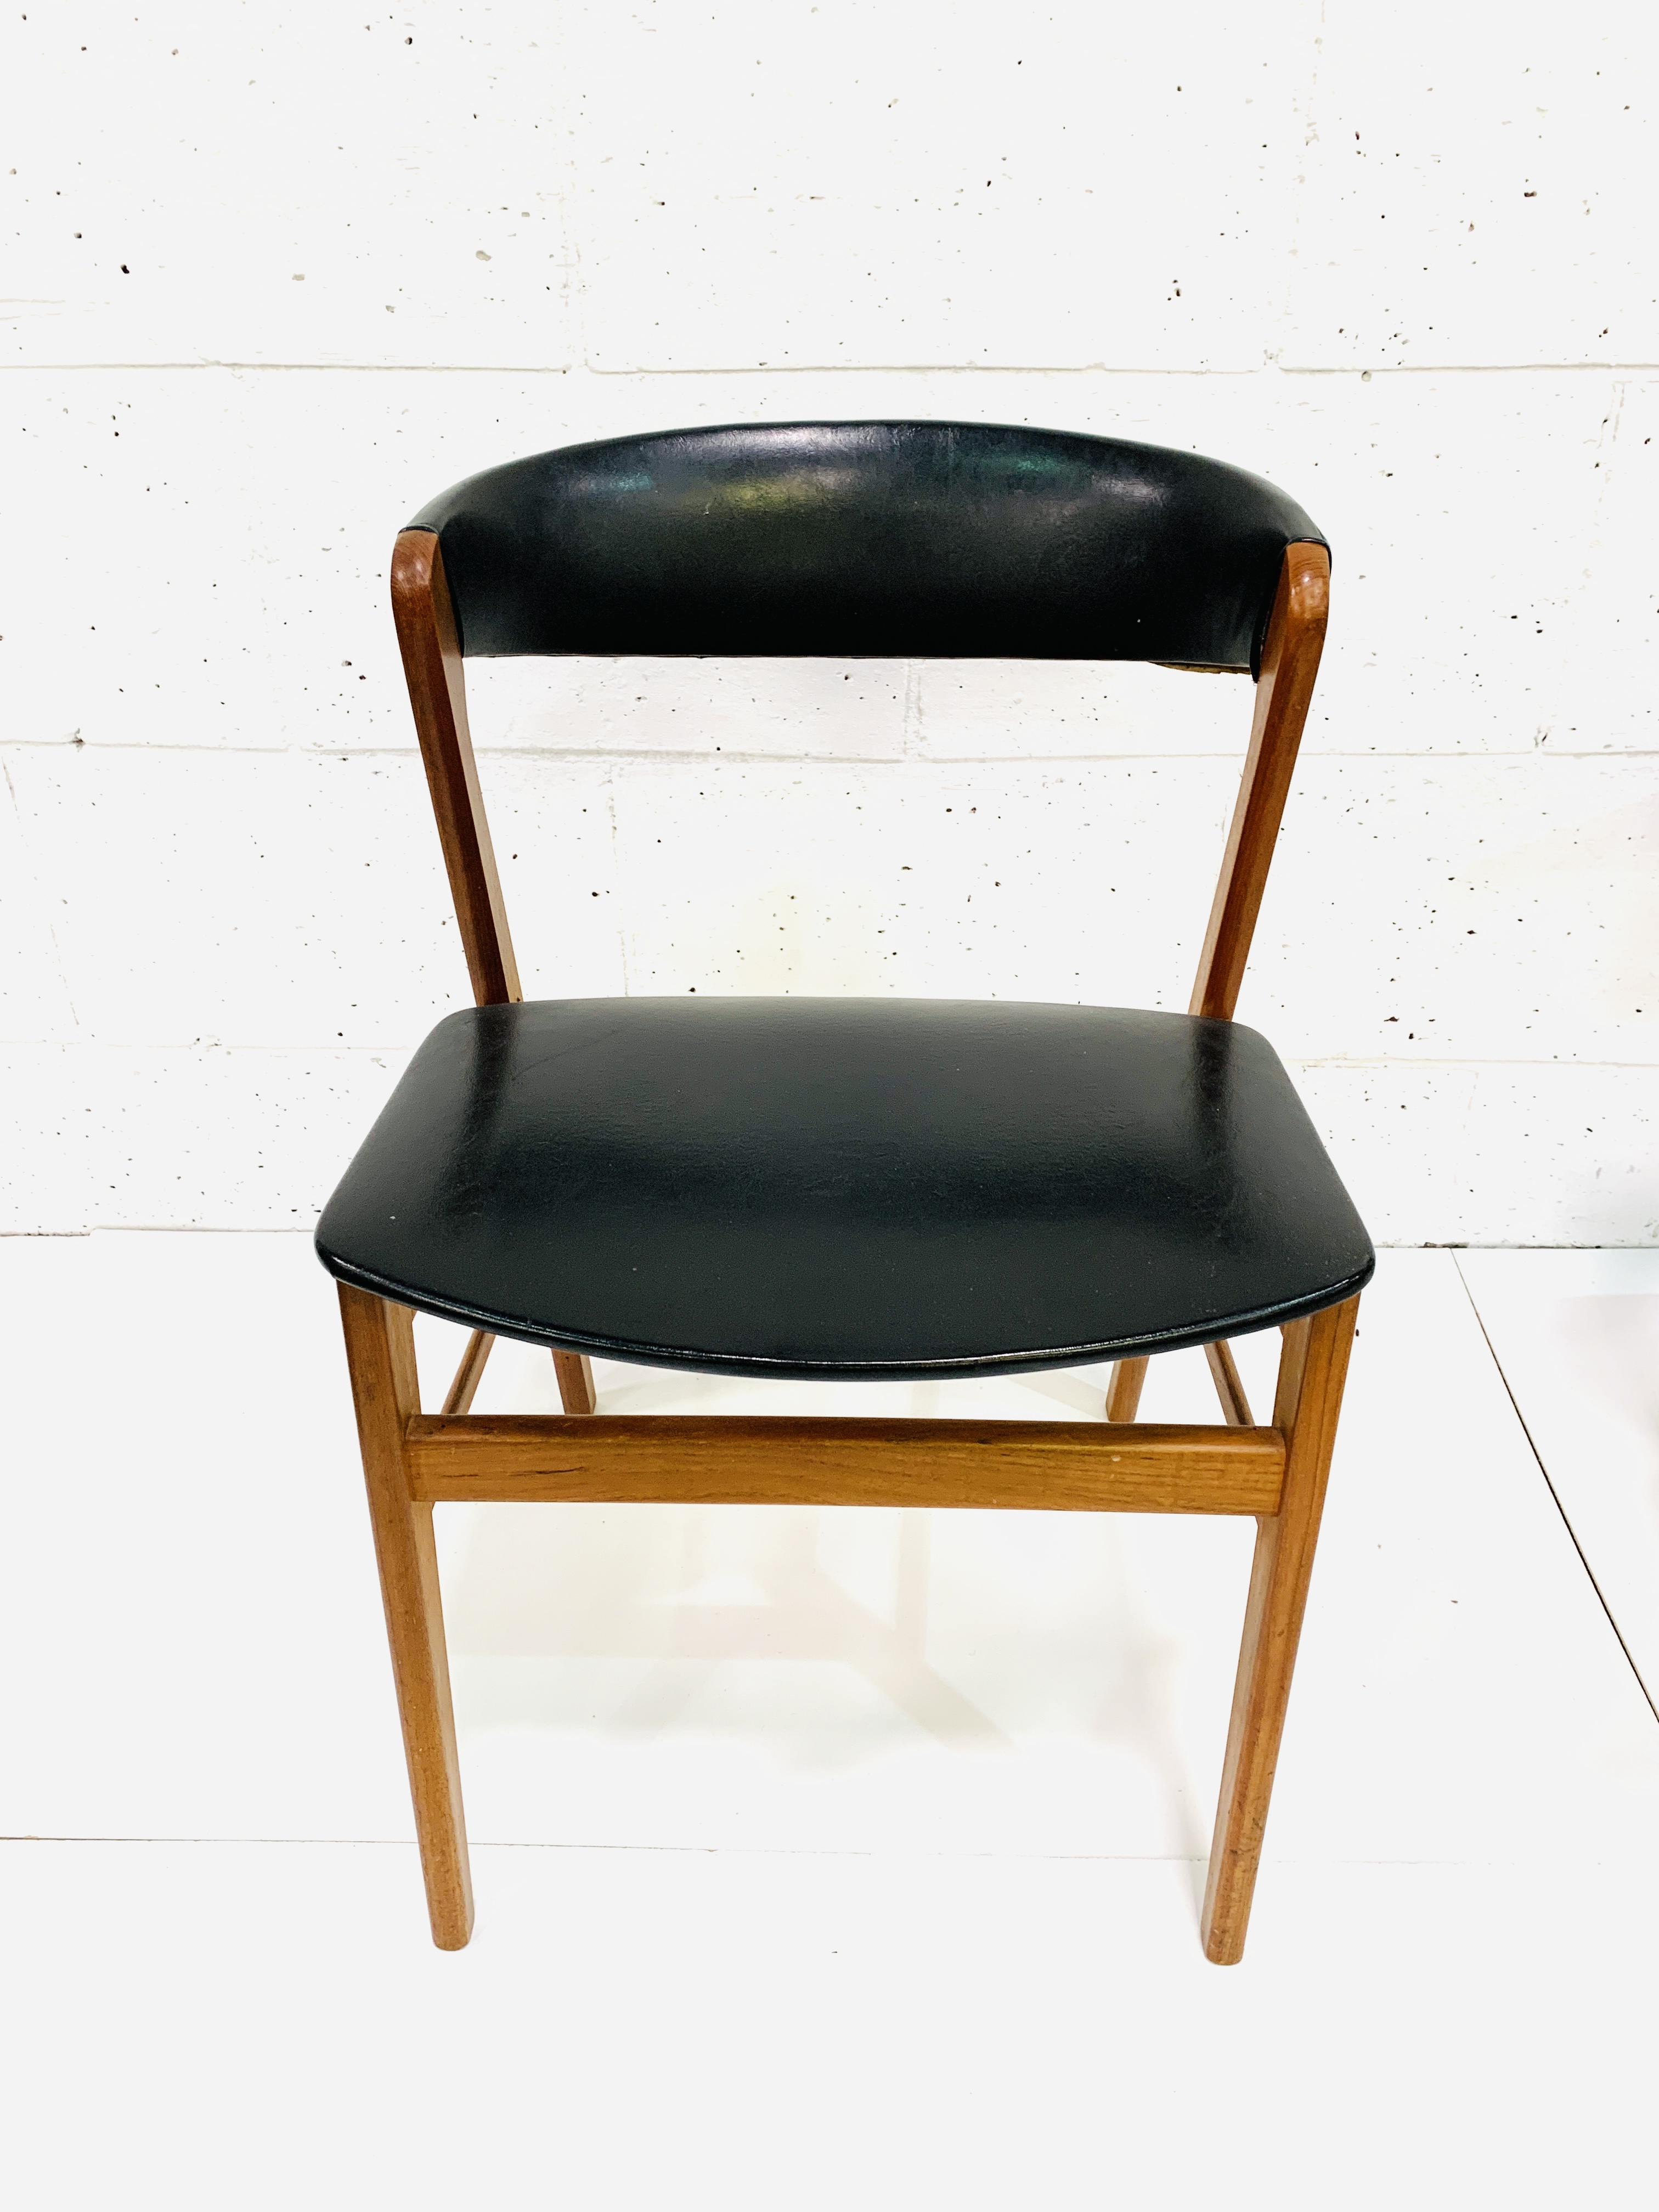 Six 1960's teak framed chairs - Image 5 of 7